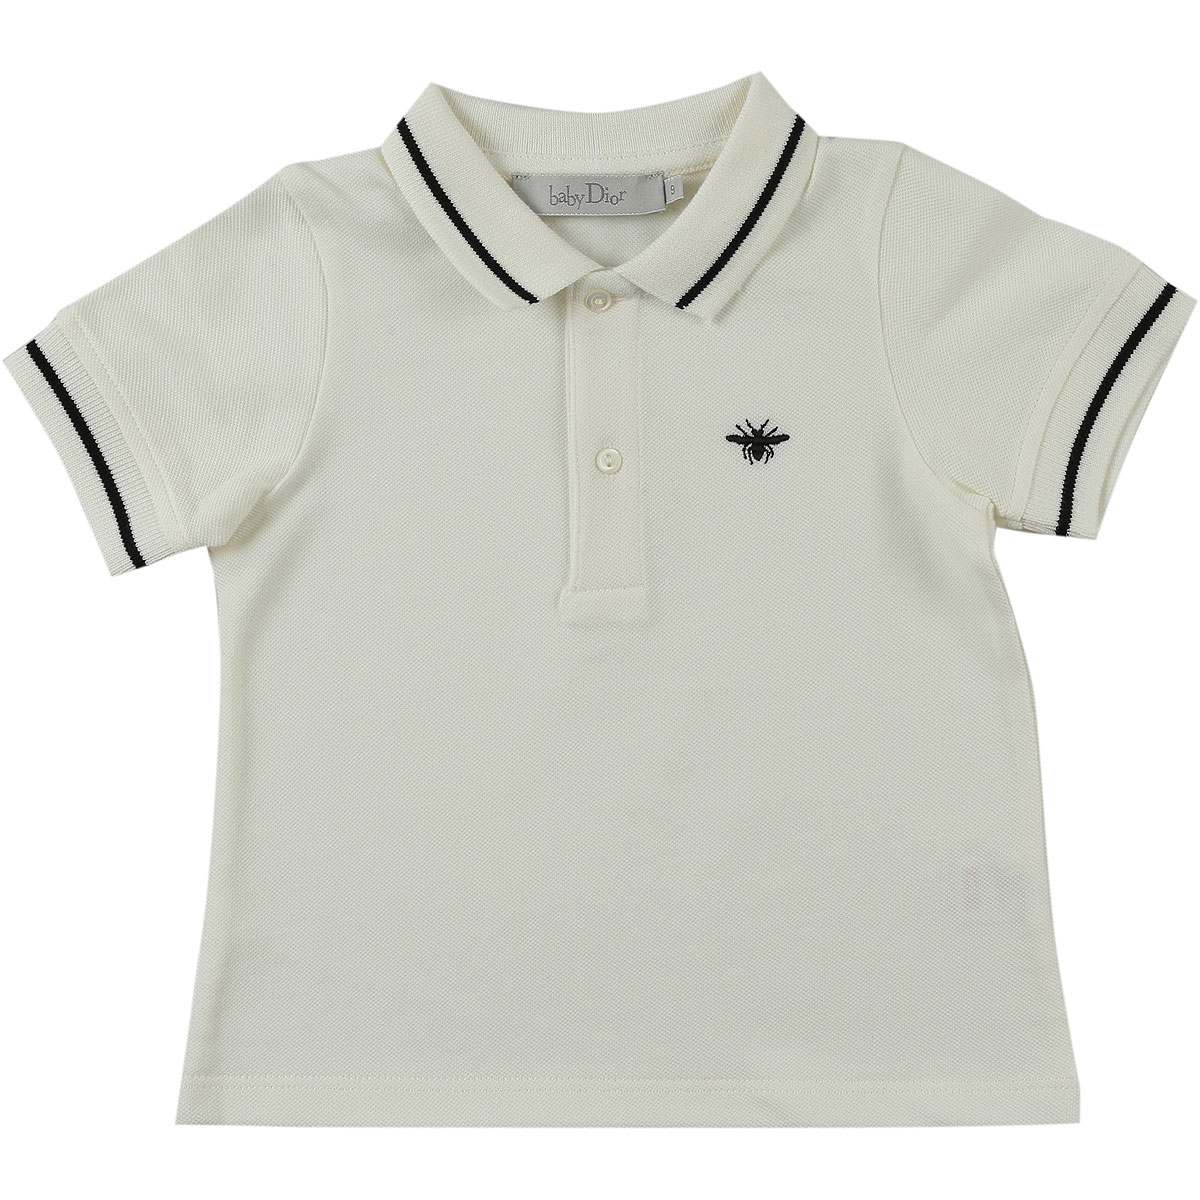 Image of Baby Dior Baby Polo Shirt for Boys, White, Cotton, 2017, 12M 18M 2Y 3Y 6M 9M